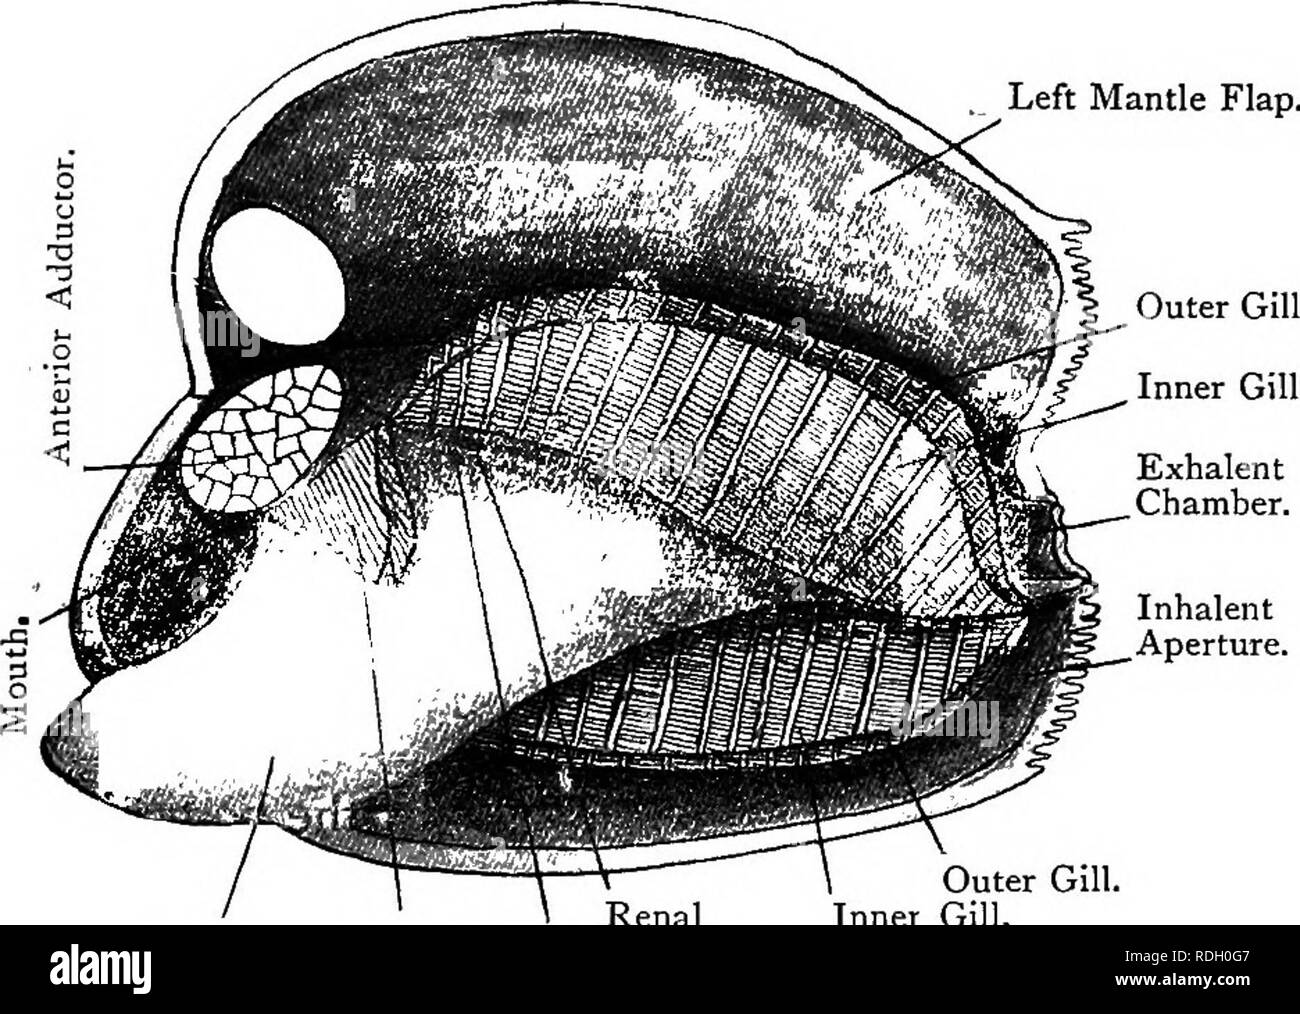 . Elementary text-book of zoology. 272 MOLLUSC A. On either side of the foot there hang the gill-lamella, or ctenidia. These are lamellae on each side, formed in each J, . case by a gill-plate folded on itself, the outer gill-plate outwards and the inner inwards. The gill-plates are themselves composed of a number of gill- Jilaments, which hang perpendicularly in a single row from a horizontal axis which is fused with the body-wall. Fig. 191—View of Anodonta with Left Mantle-Flap thrown Bacic. (Ad nat.) Left Mantle Flap.. Inhalent Aperture. Outer Gill. Renal Inner Gill. Foot. Labial Genital Ap - Stock Image